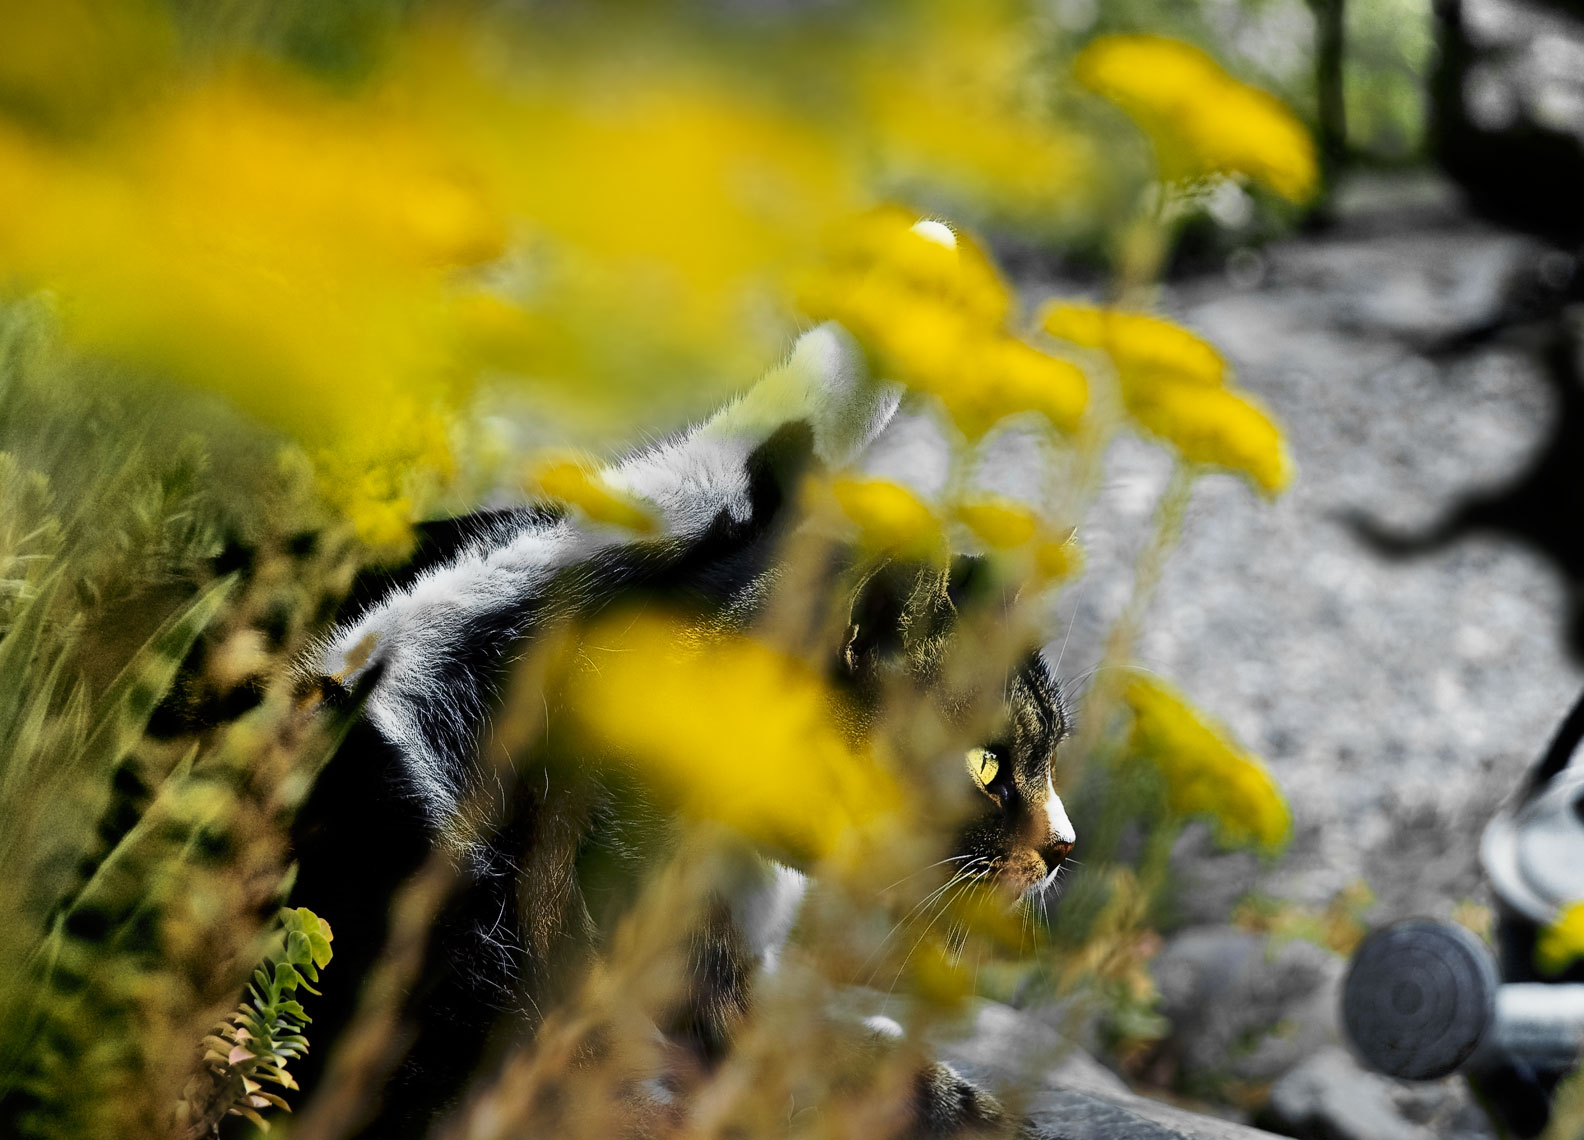 David Lebe; Cat Behind the Sedum, 2005, cat photograph